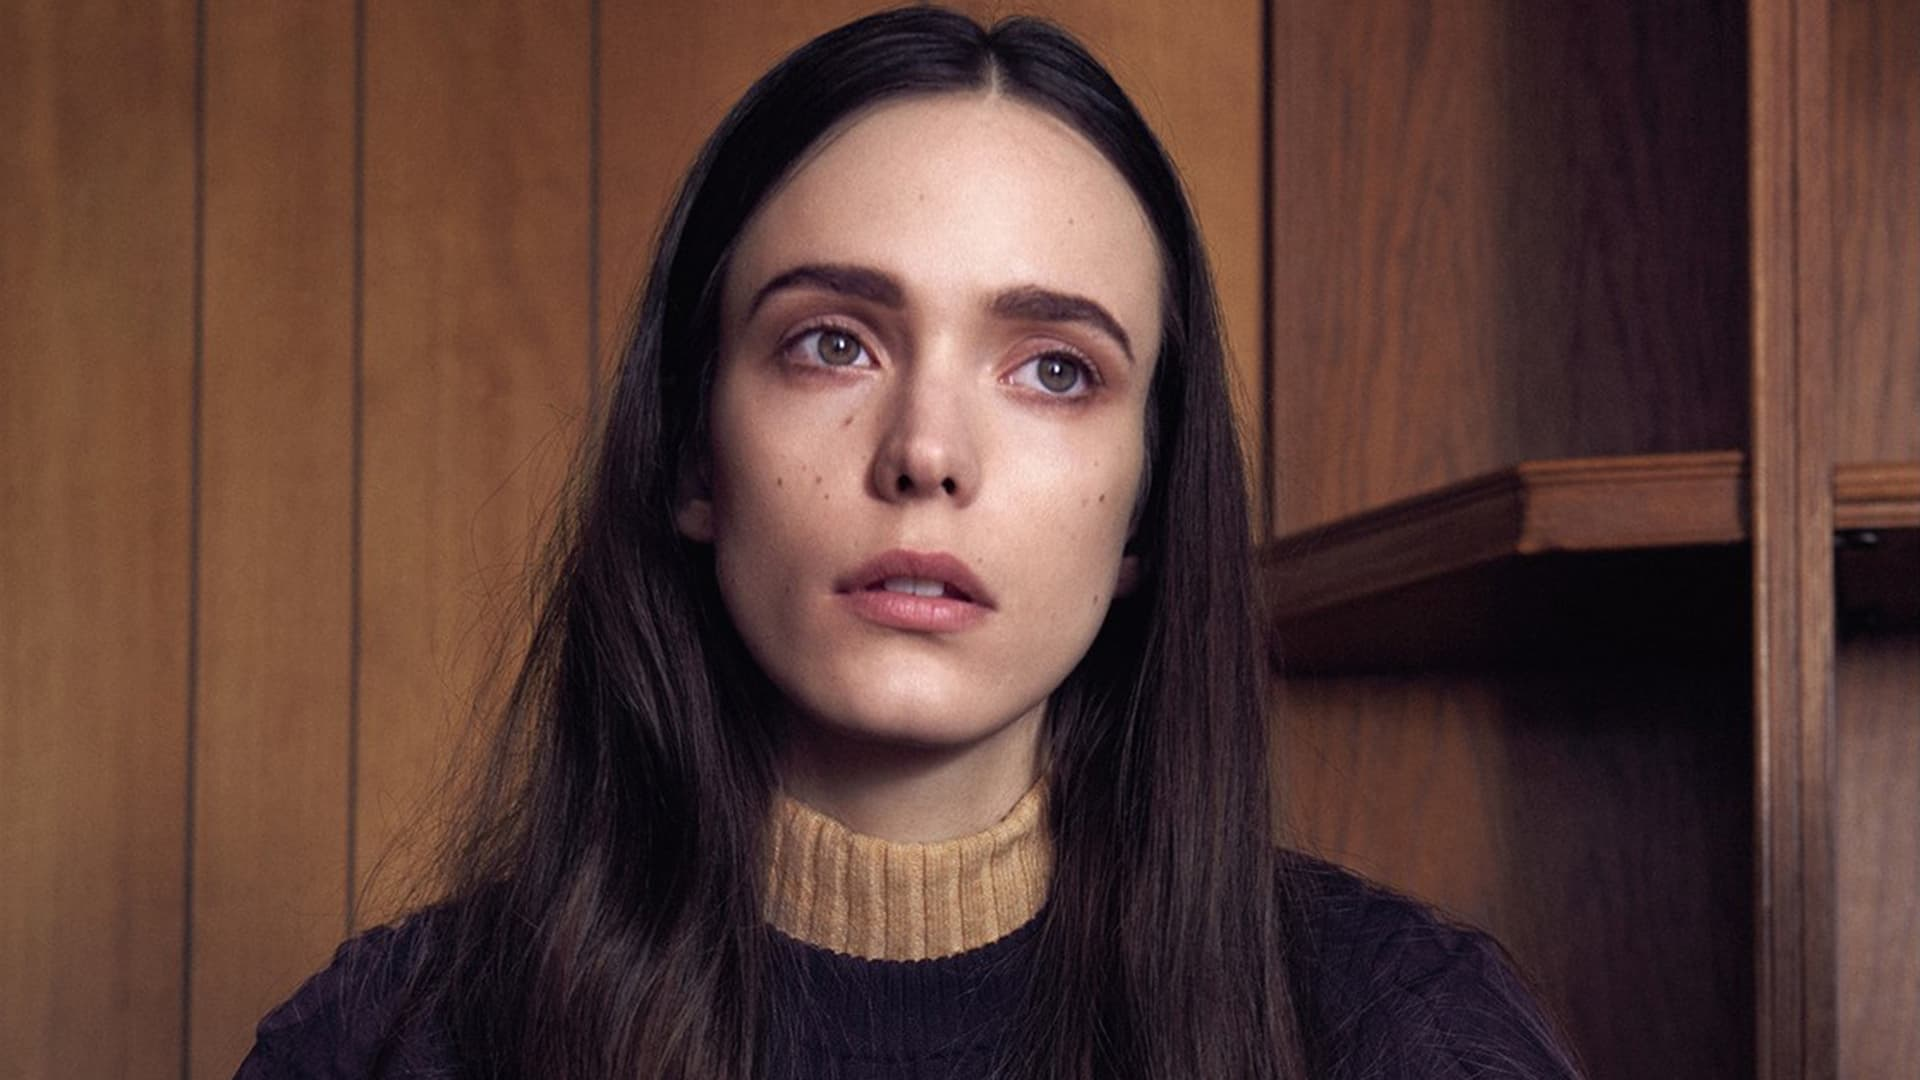 Stacy Martin Wallpapers Hd High Quality Resolution Download